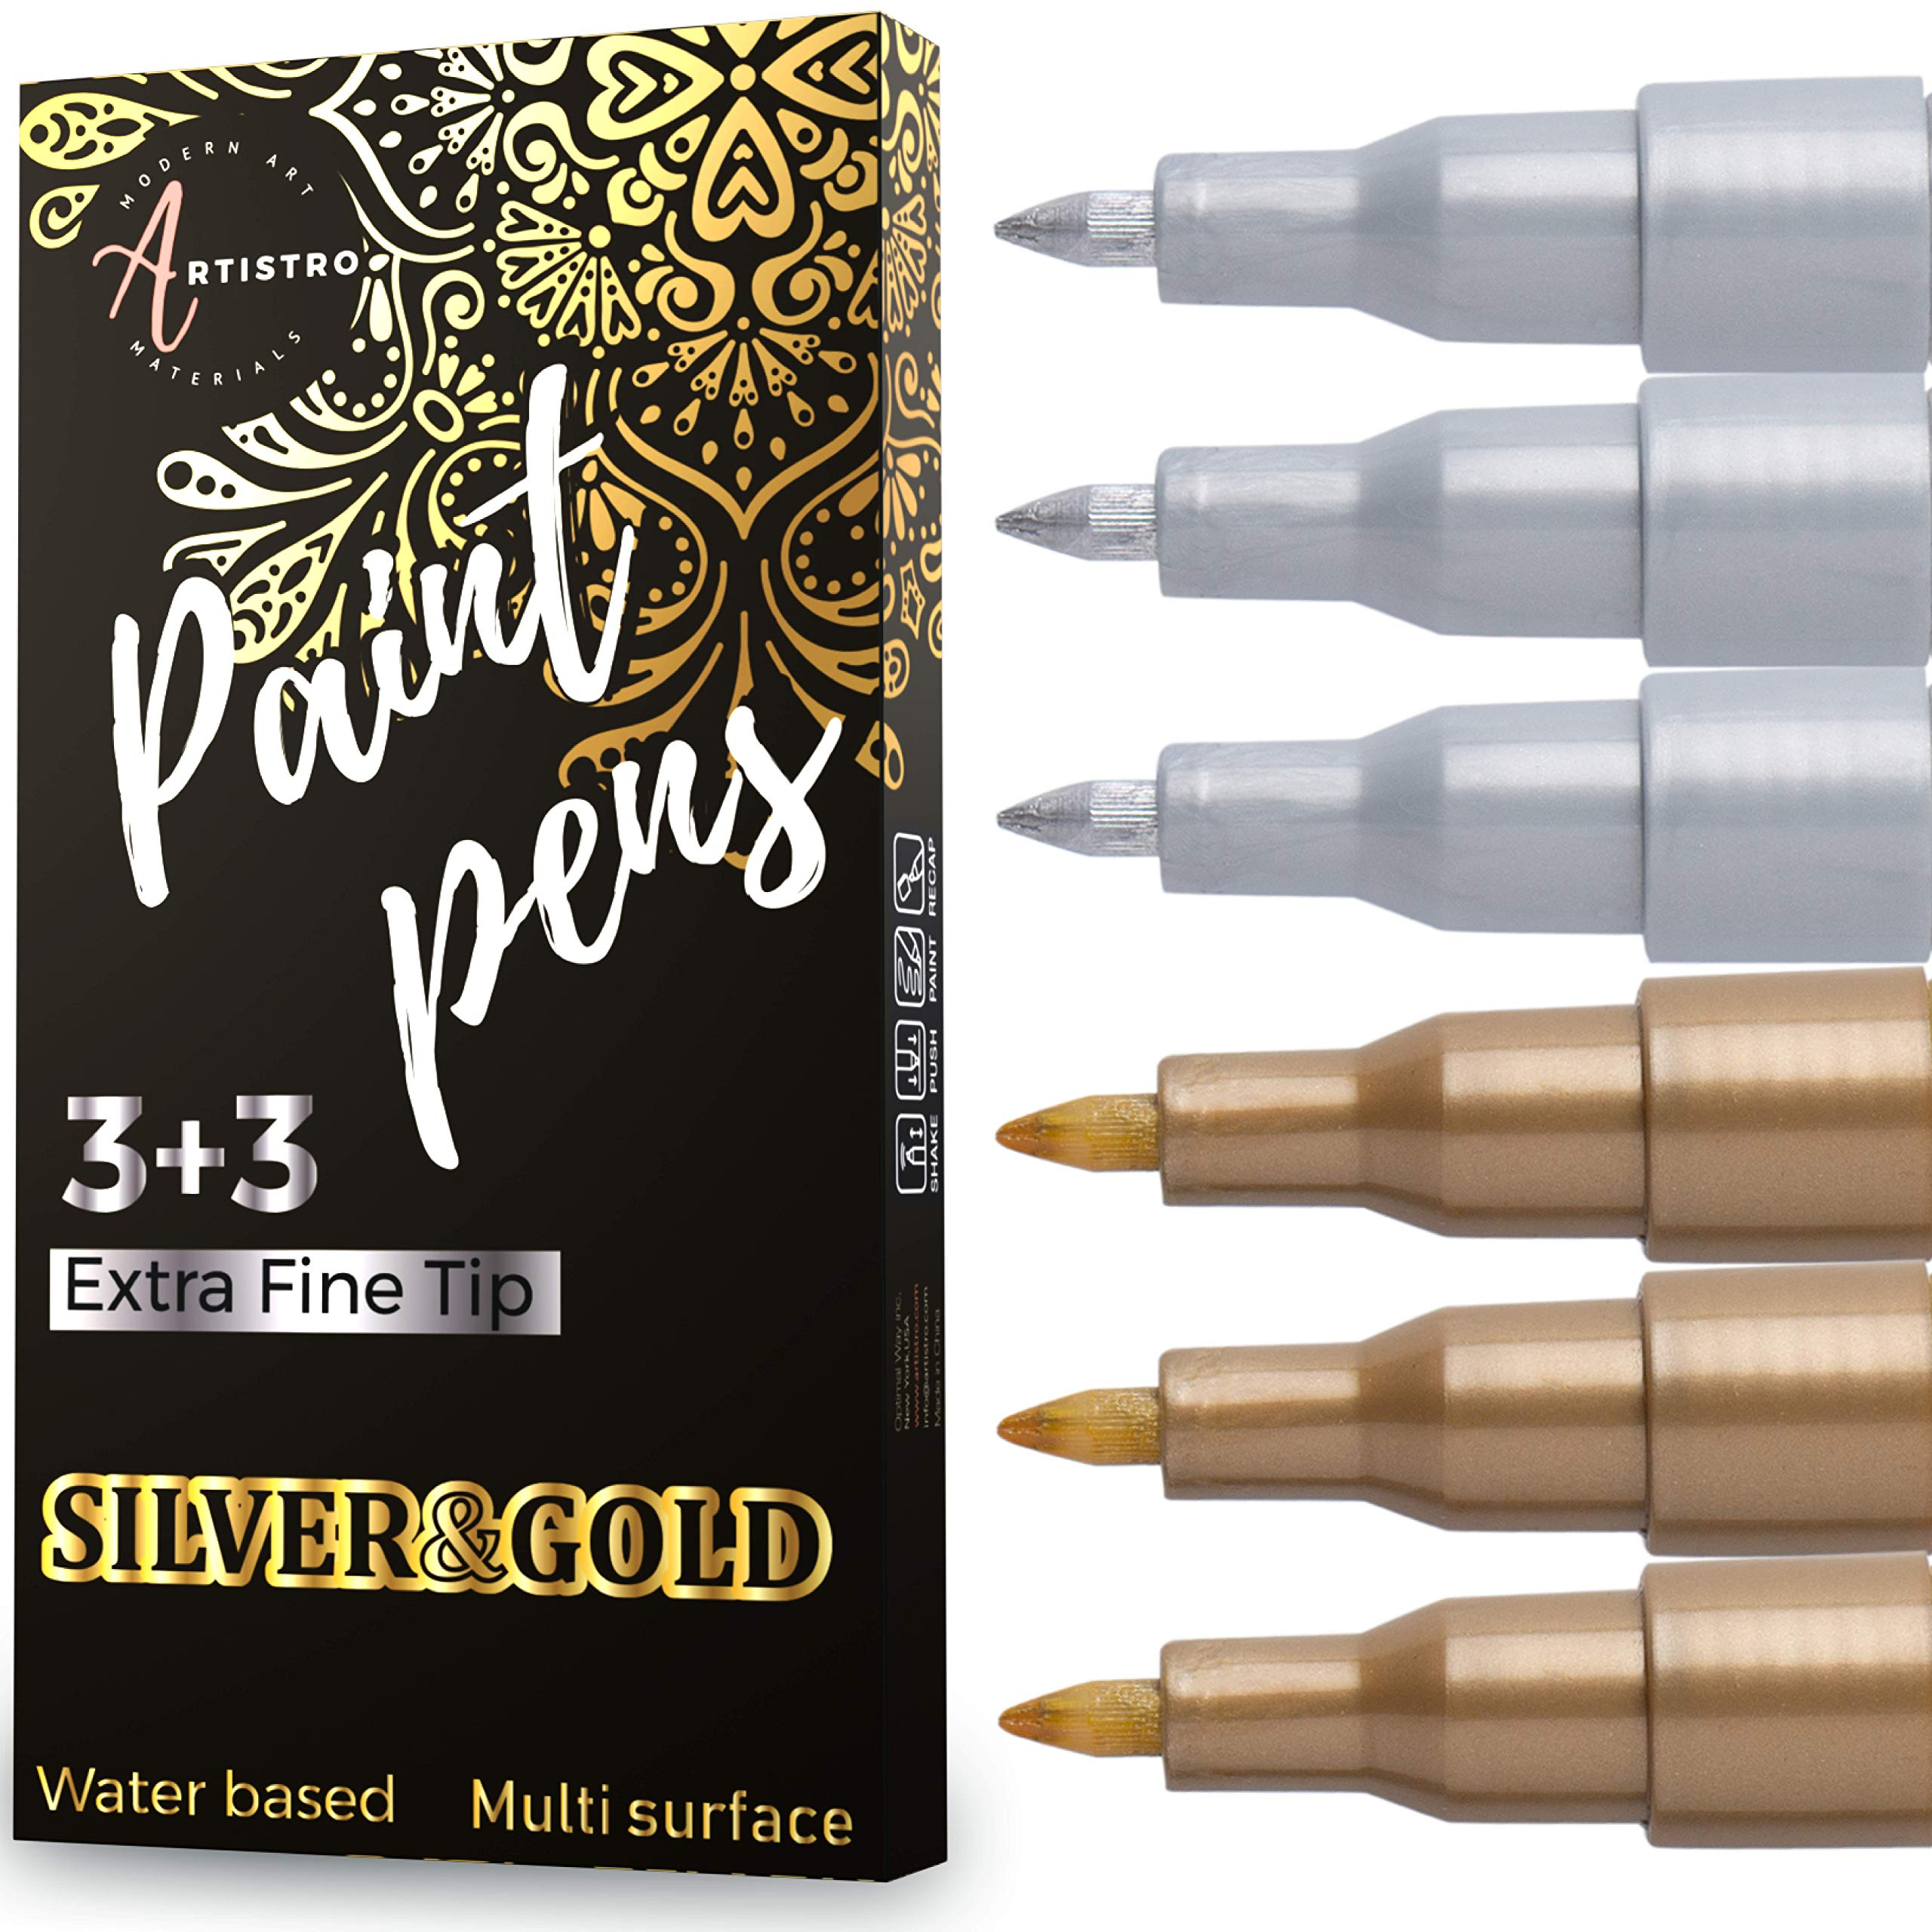 Paint Pens for Rock Painting, Stone, Ceramic, Wine Glass, Wood, Fabric, Canvas, Metal, Scrapbooking. (6 Pack) Set of 3 Gold & 3 Silver Acrylic Paint Markers Extra-Fine Tip 0.7mm by ARTISTRO